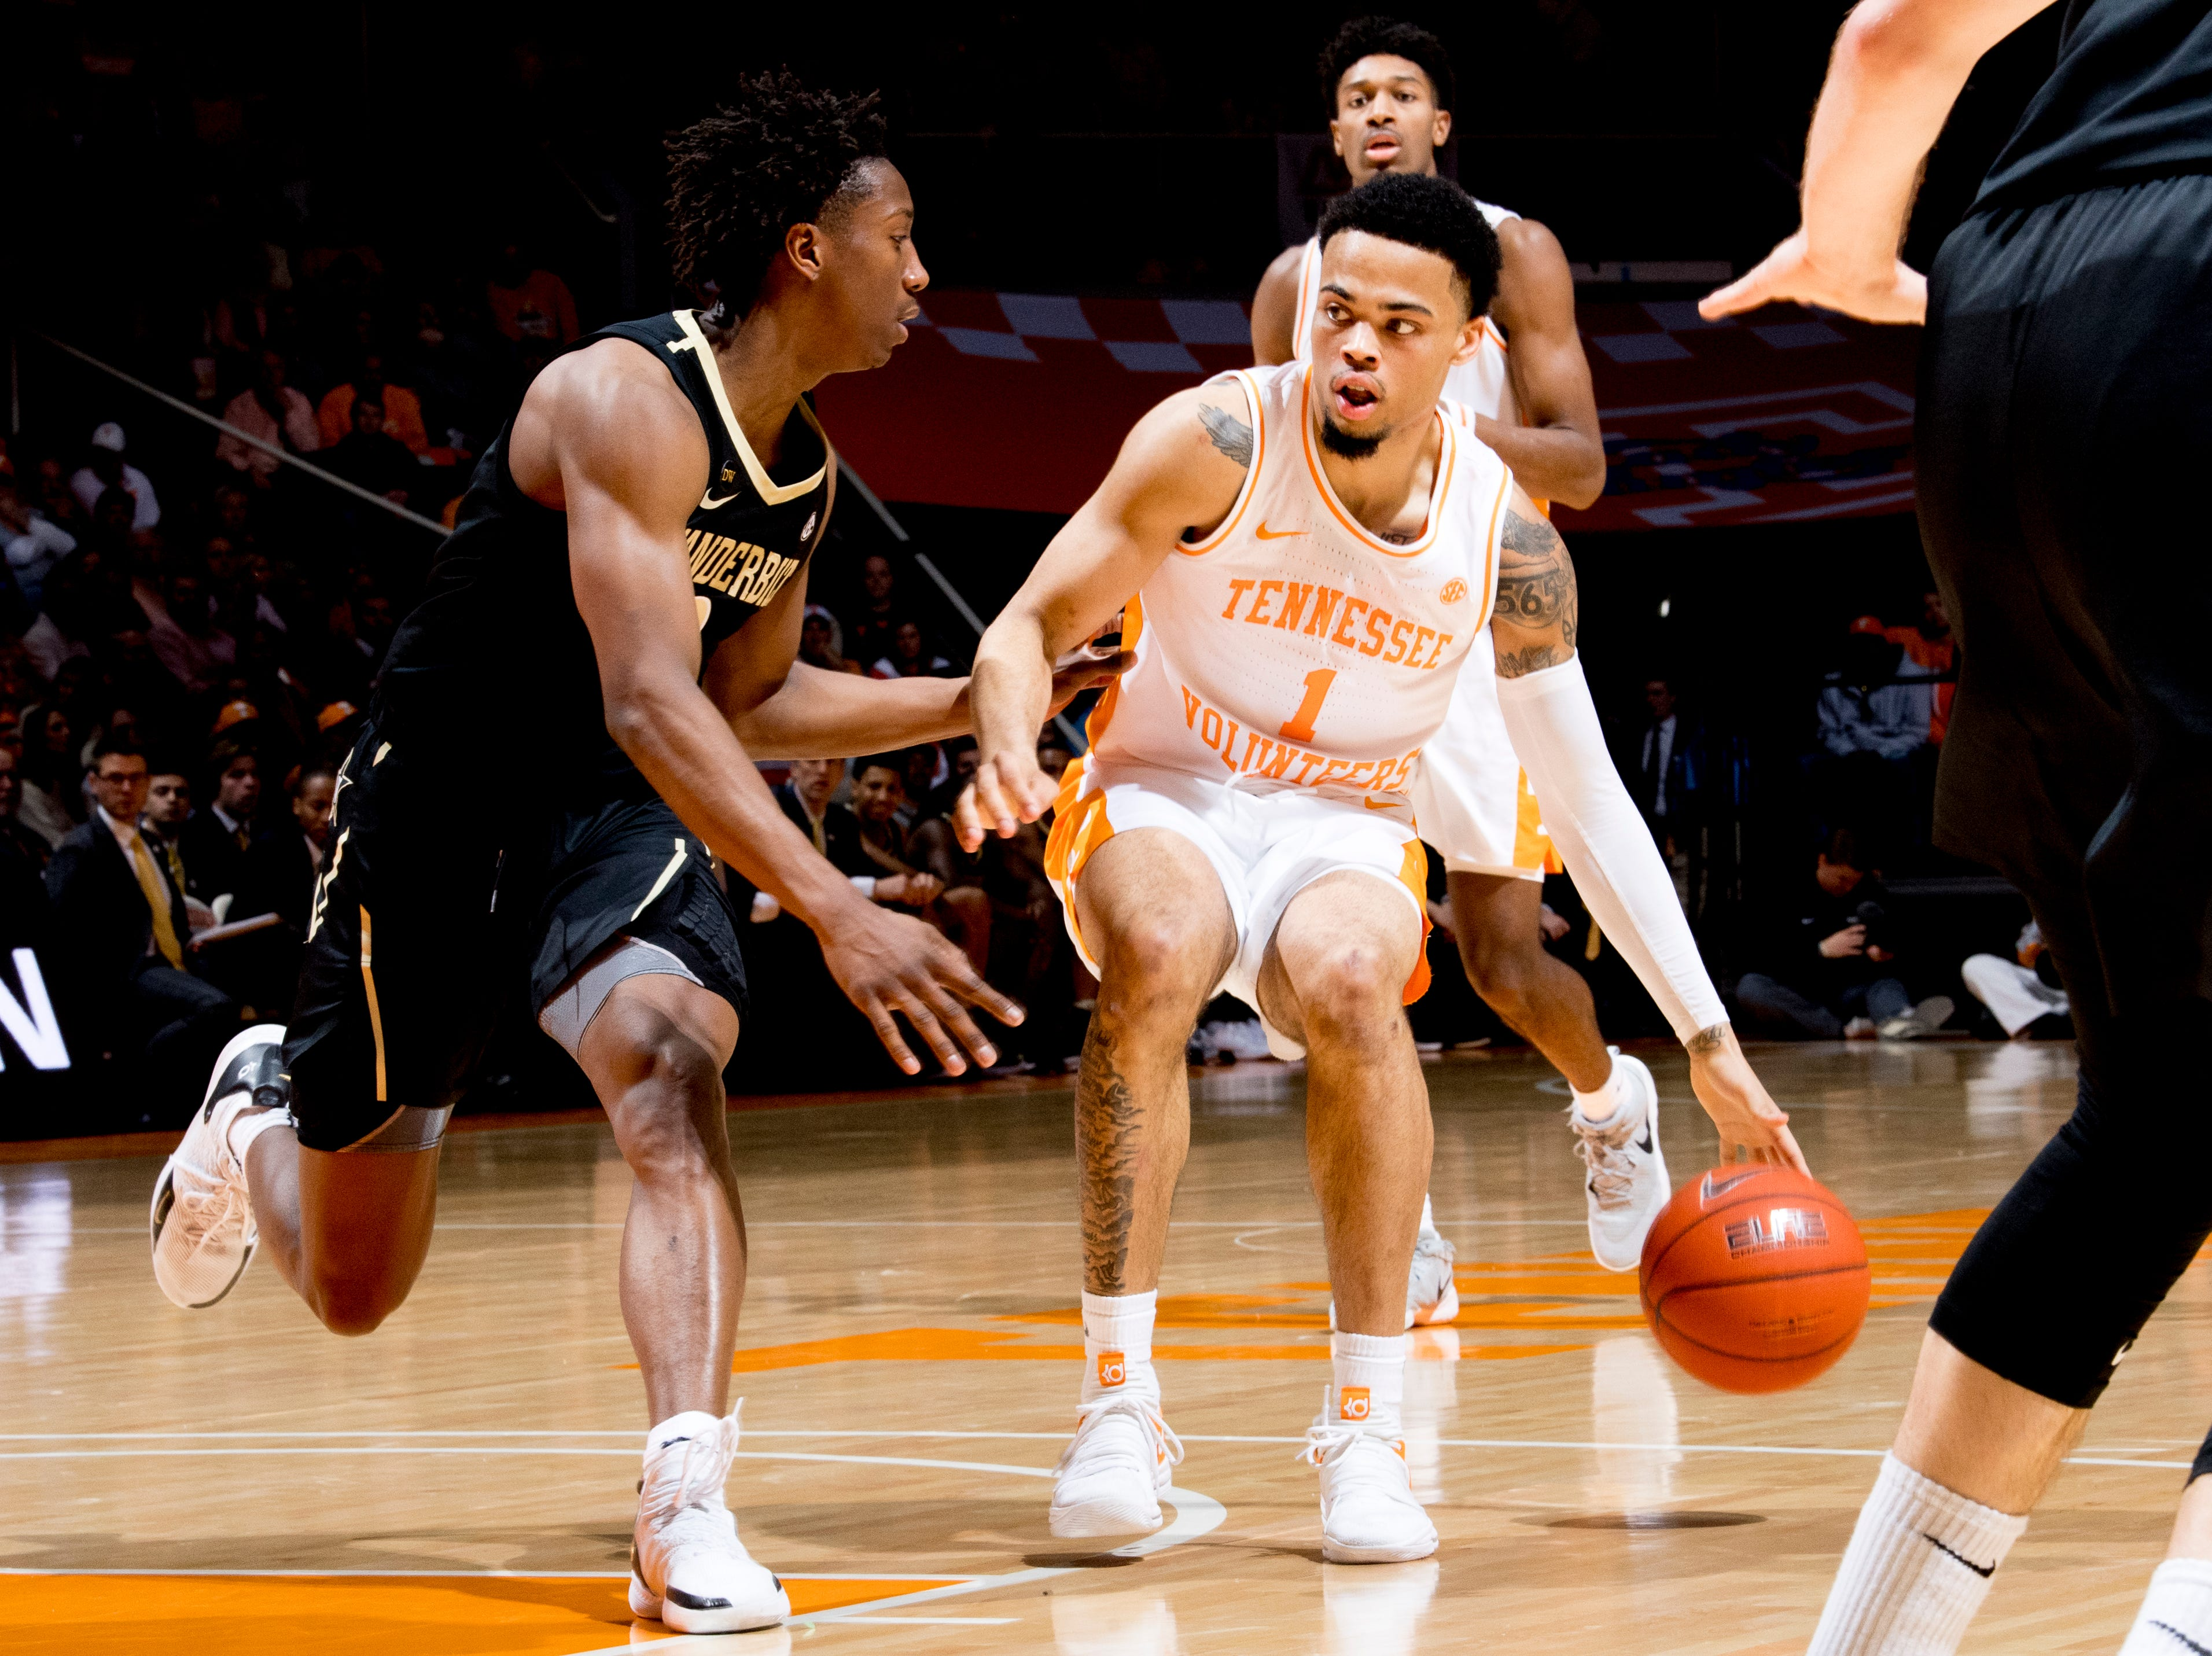 Tennessee guard Lamonte Turner (1) dribbles the ball down the court during a game between Tennessee and Vanderbilt at Thompson-Boling Arena in Knoxville, Tennessee on Tuesday, February 19, 2019.